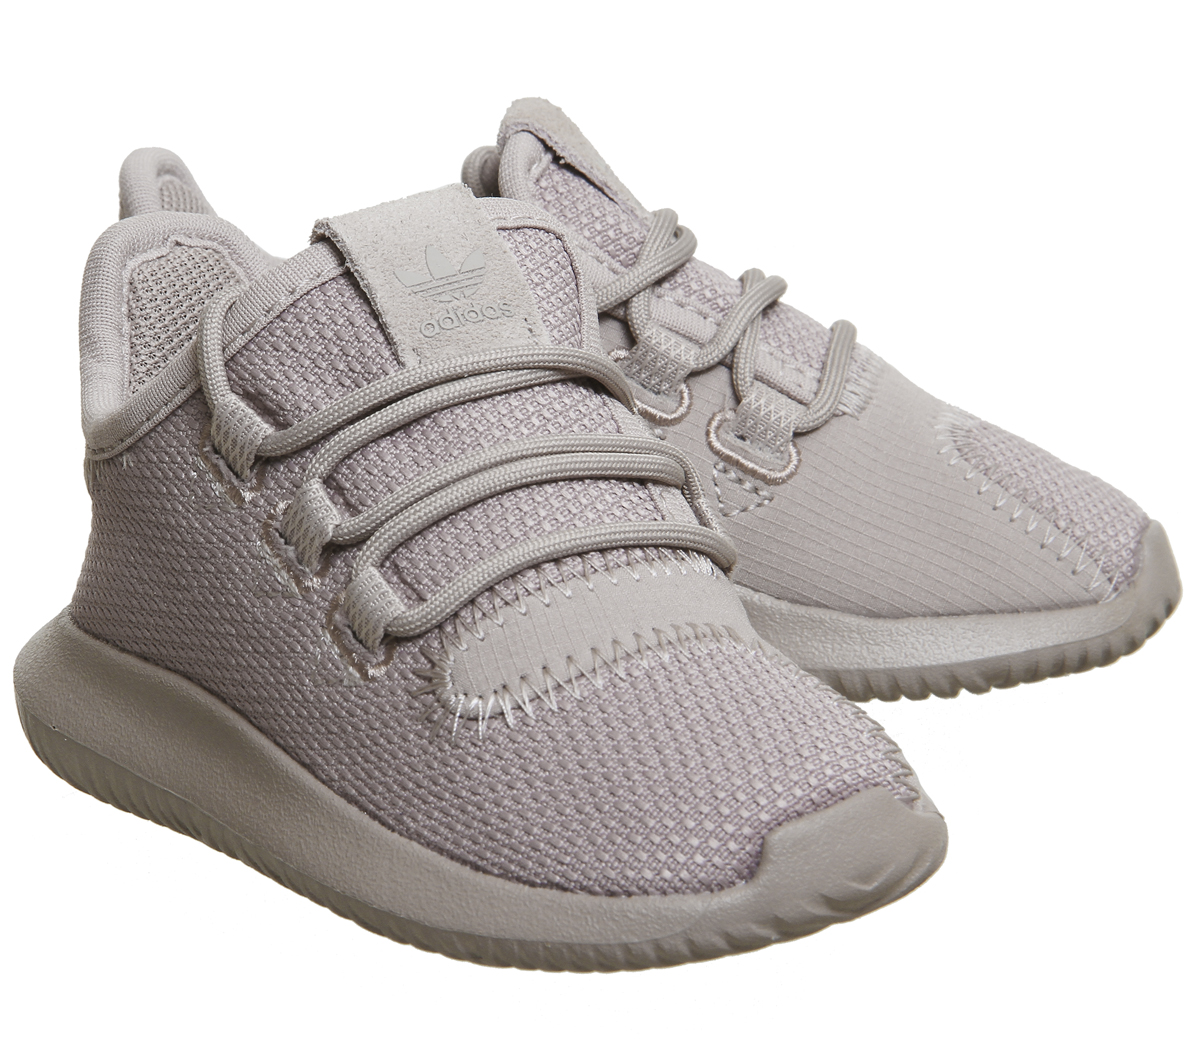 reputable site f8414 217fc Kids-Adidas-Tubular-Shadow-Infant-Trainers-Vapour-Grey-